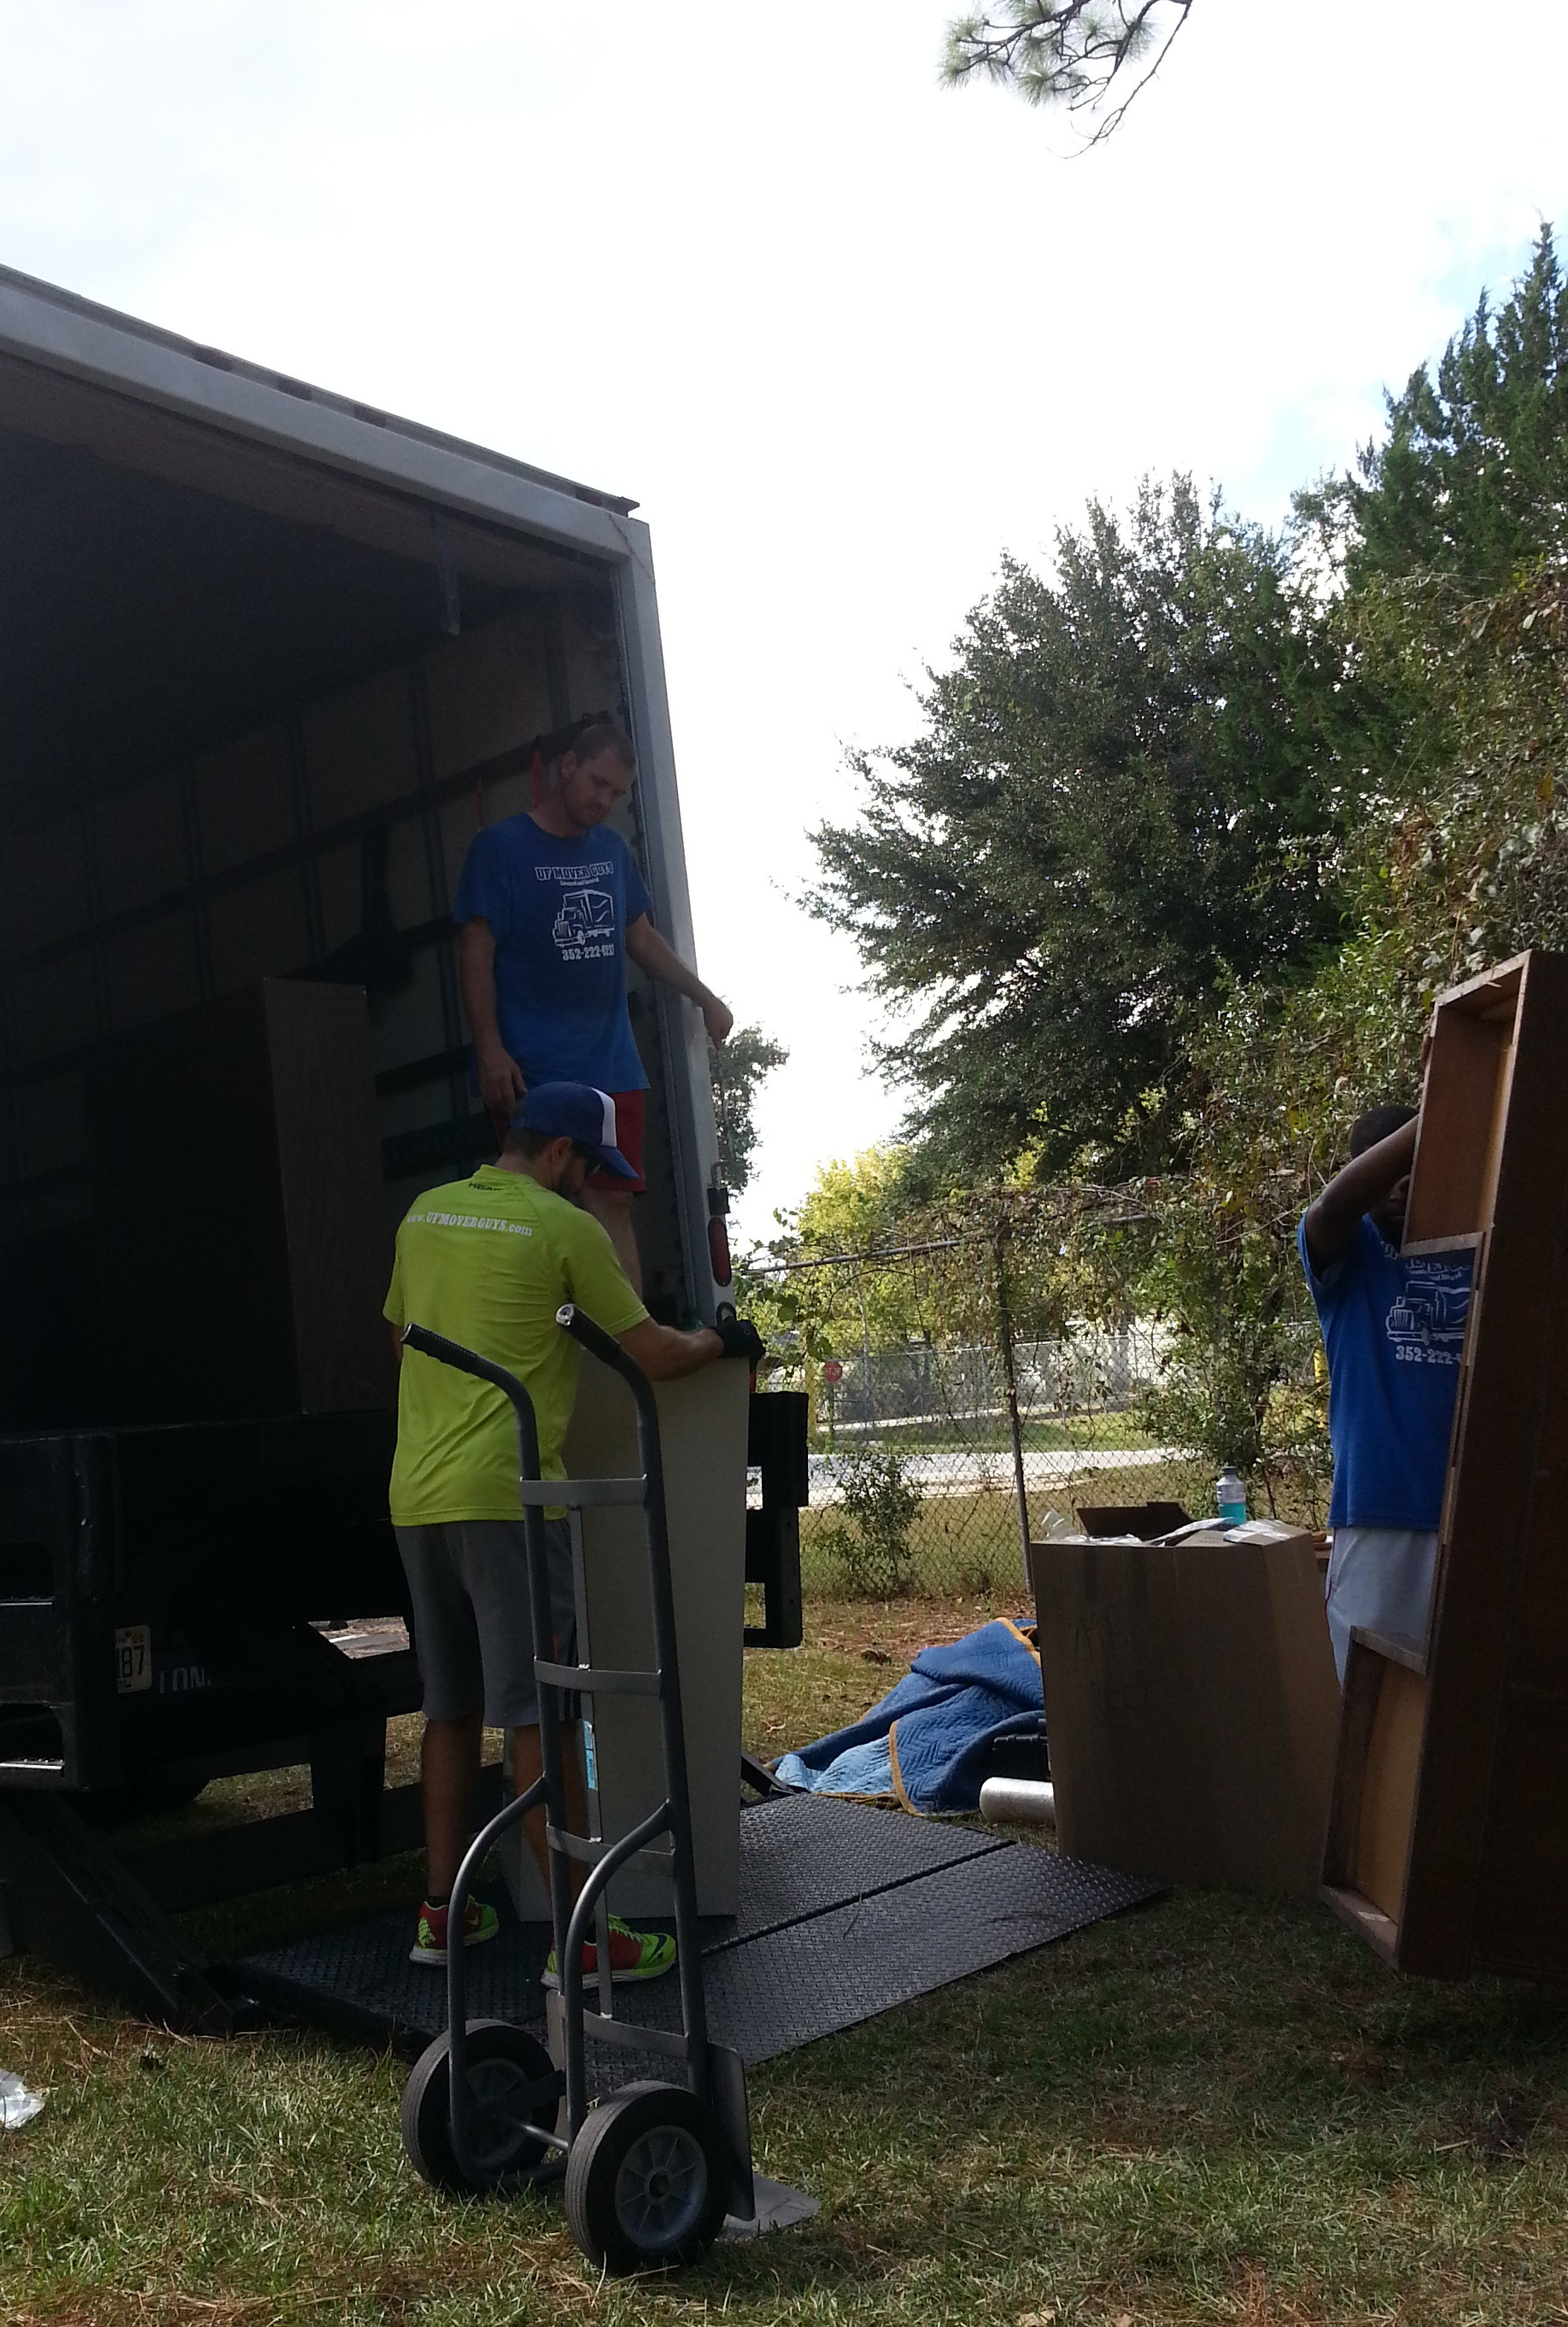 Here, Stan Travis and Kenny unload the items going into the new building.